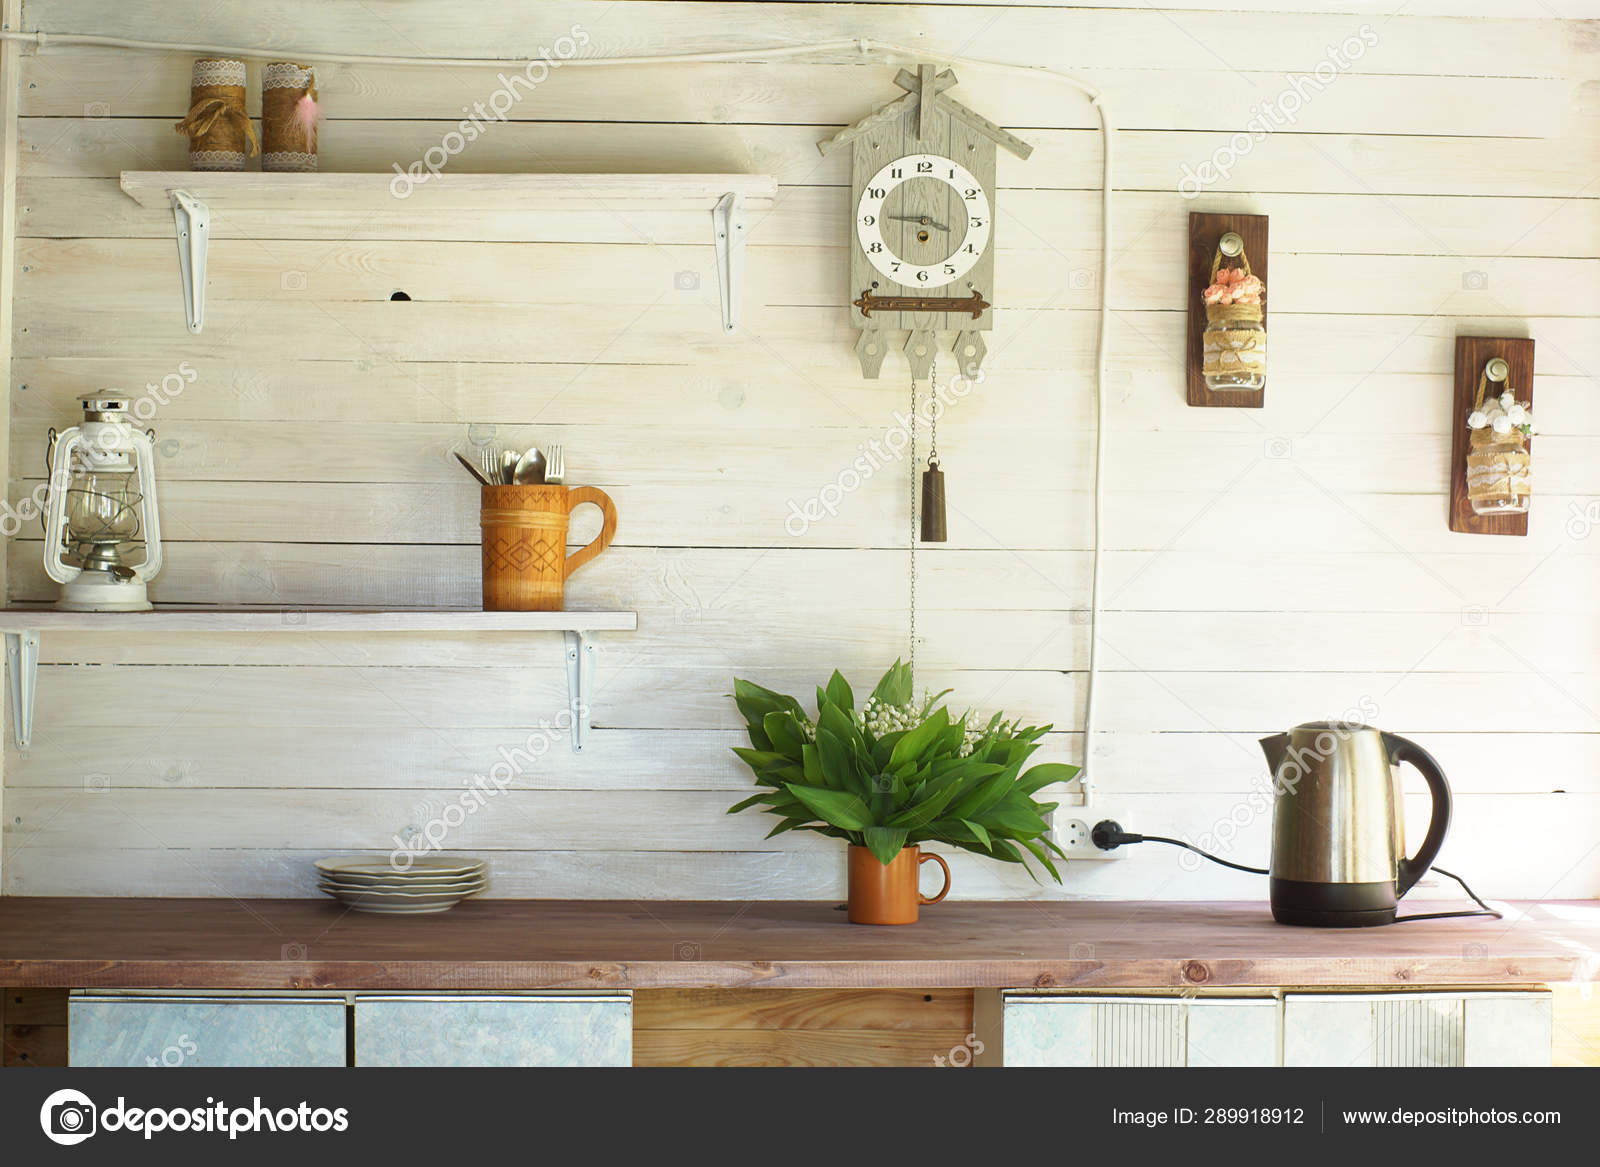 Small Rustic Kitchen With A Clock On The Wall White Plank